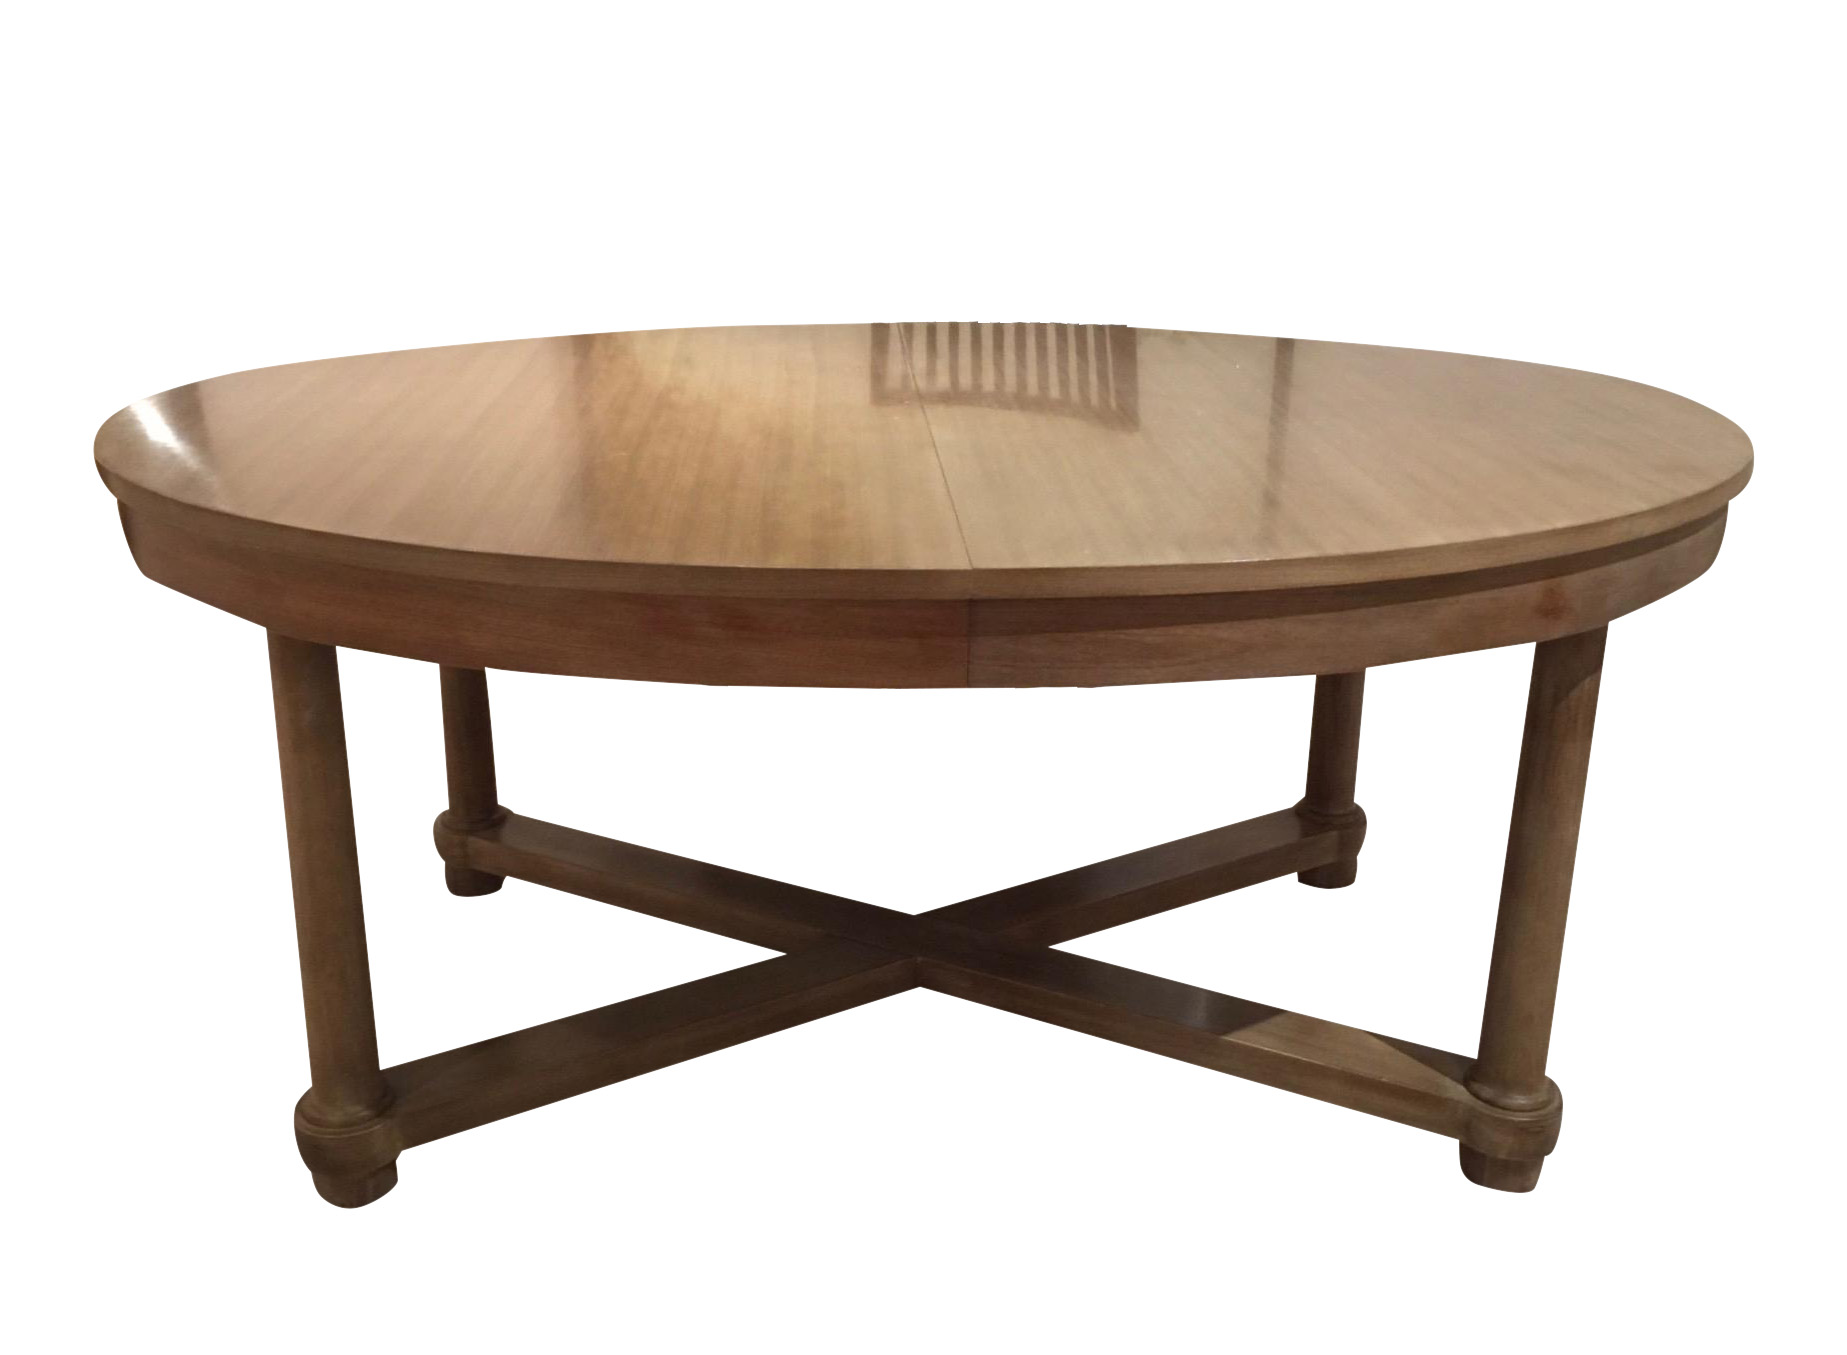 Barbara barry for baker oval dining table chairish Barbara barry coffee table